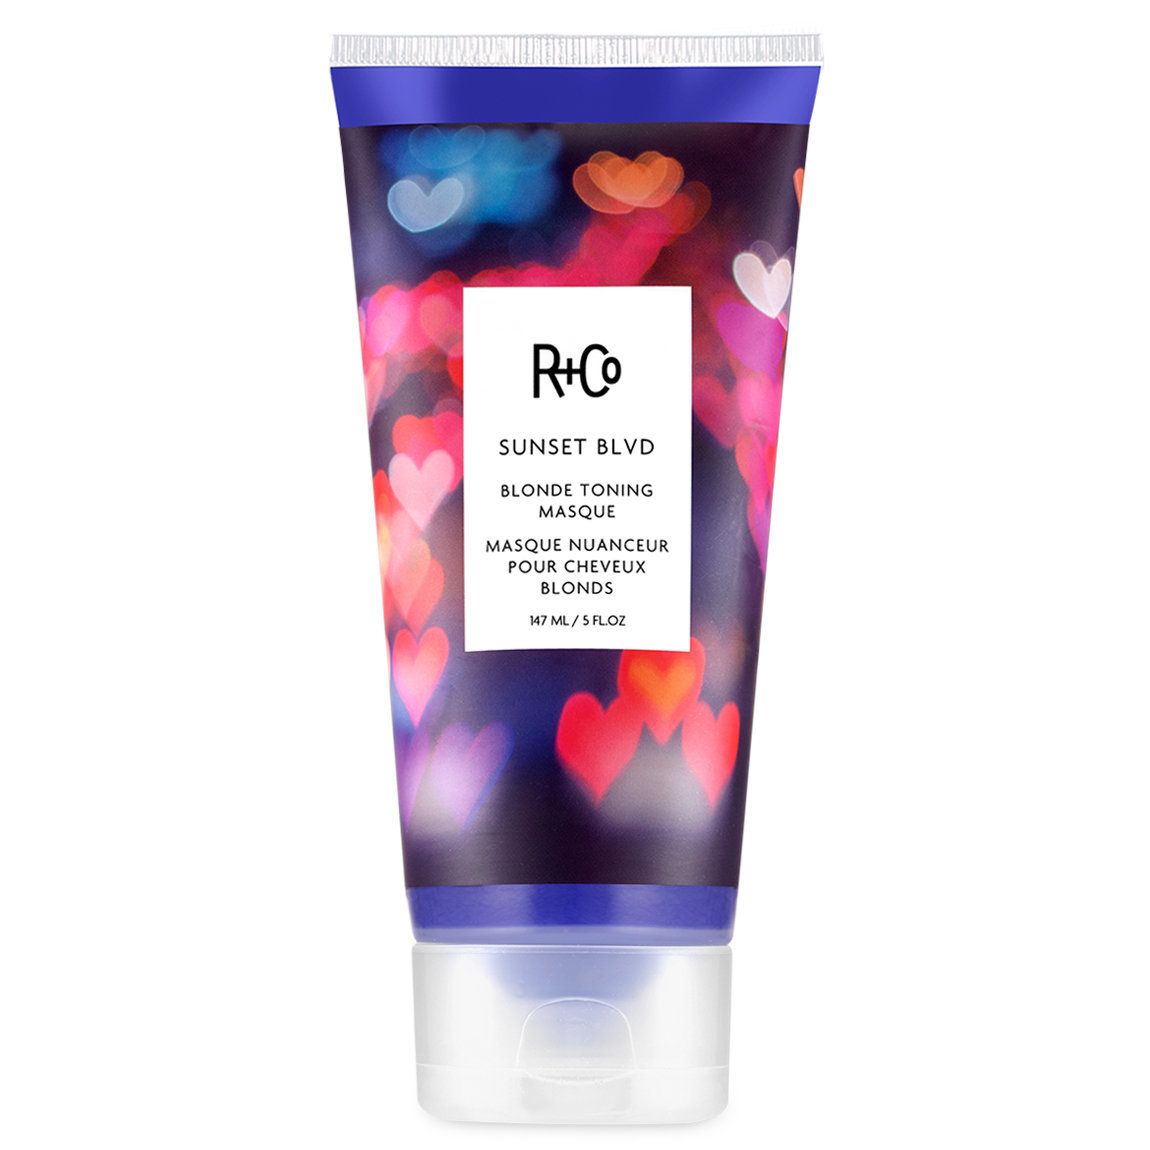 R+Co Sunset Blvd Blonde Toning Masque alternative view 1 - product swatch.